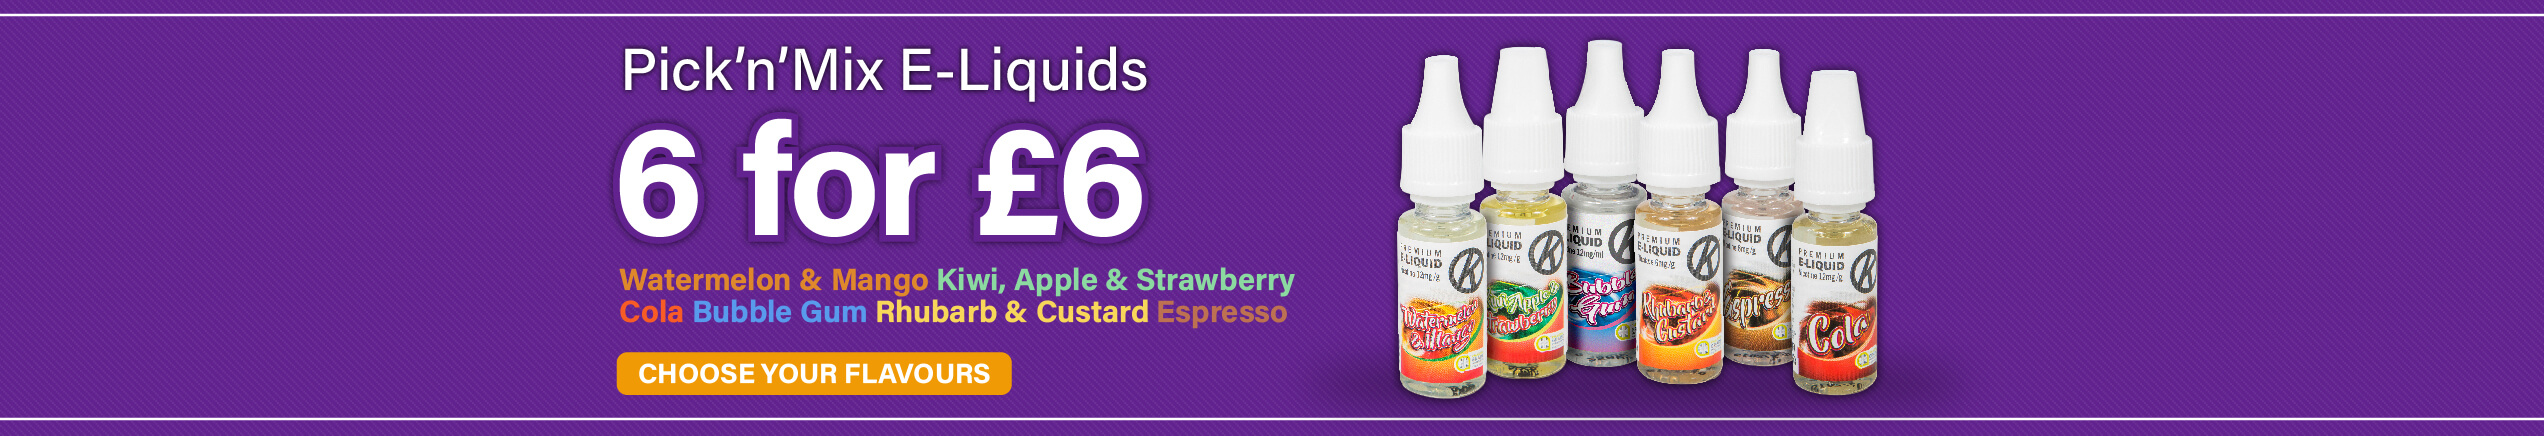 £1 E-Liquids Offer Banner - Six bottles for £6